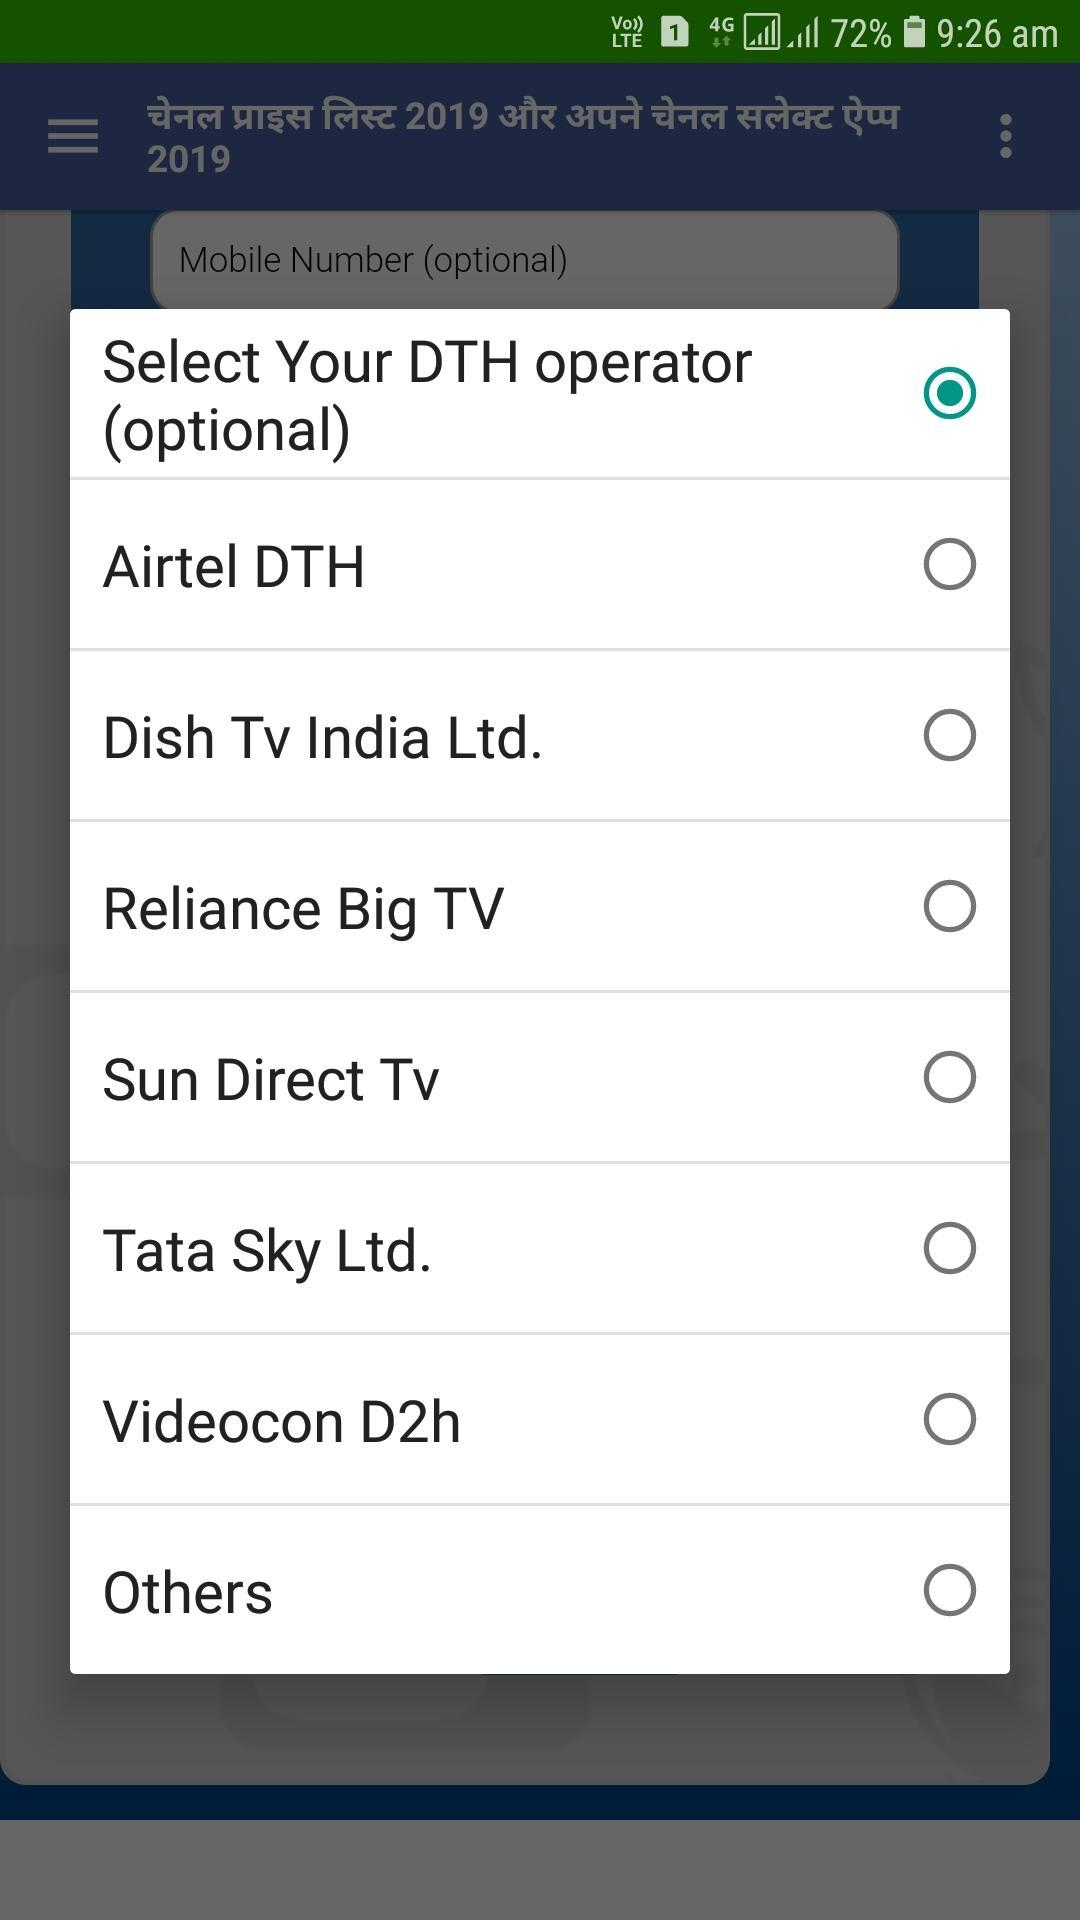 TRAI Channel Selector Price List Latest App 2019 for Android